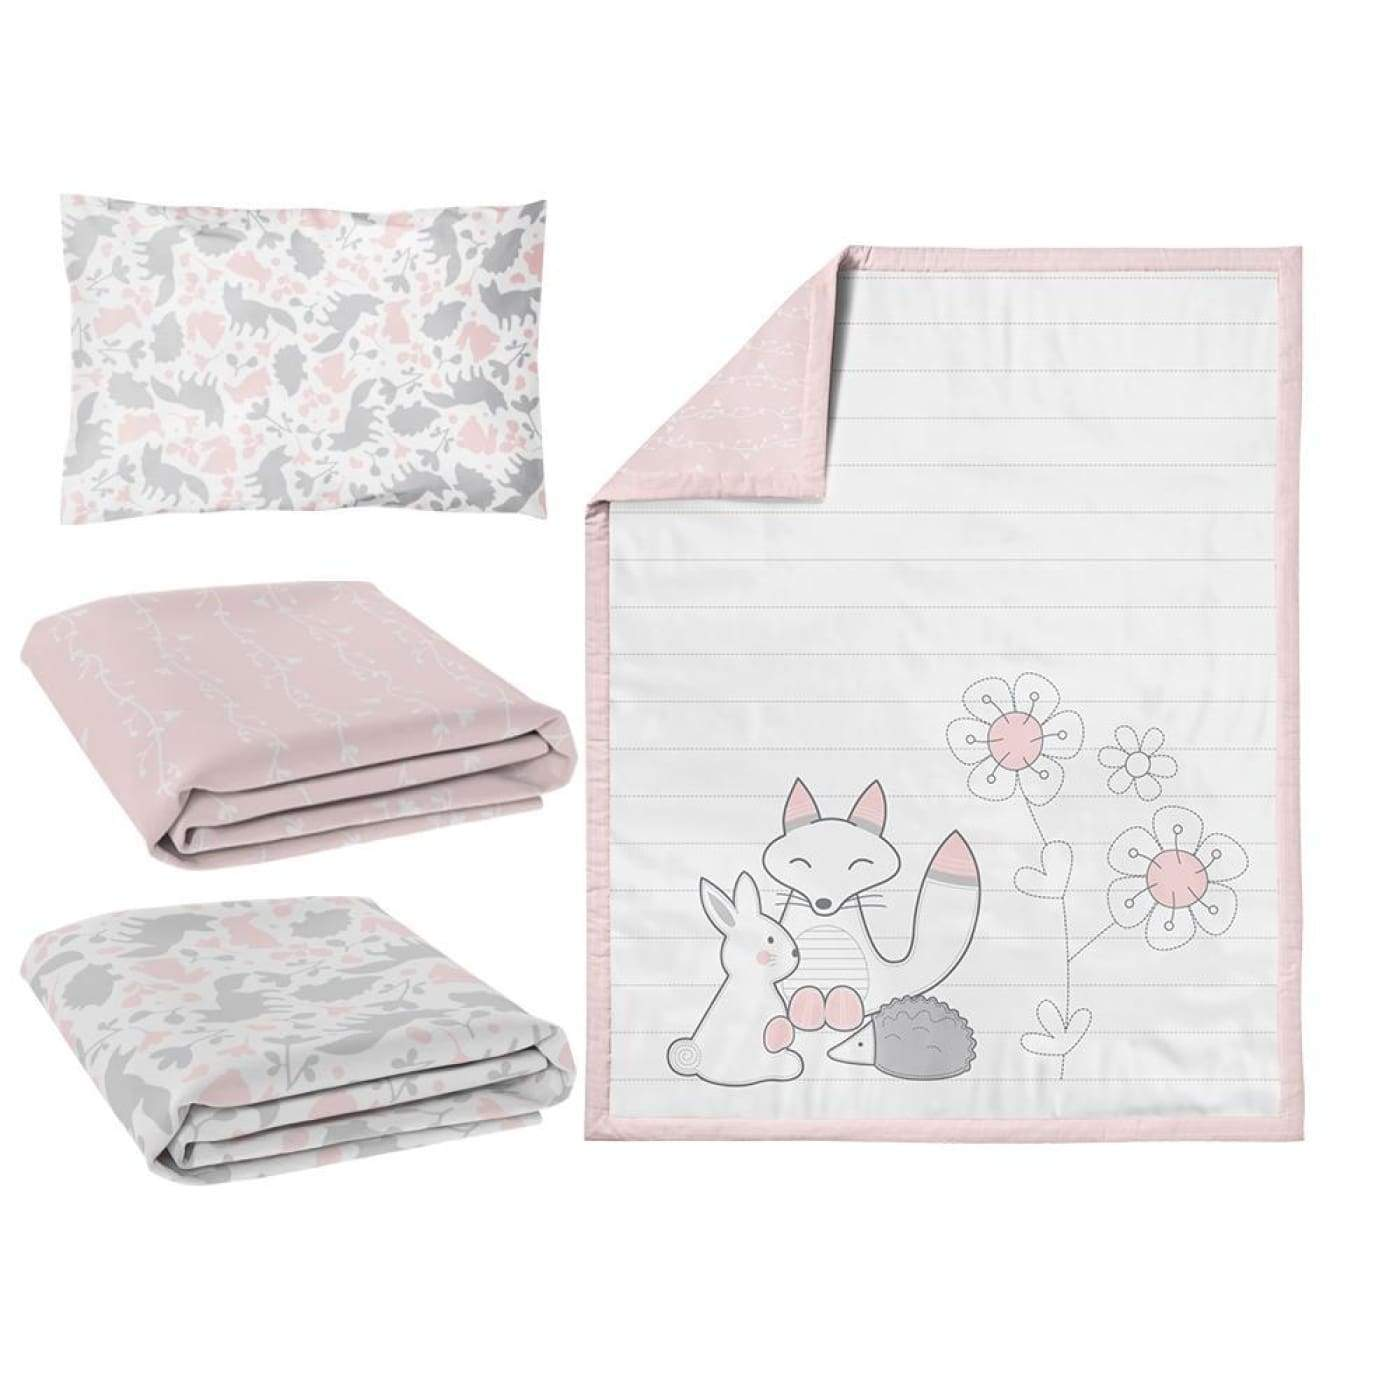 Living Textiles Nursery Set 4PC - Forest Friends - NURSERY & BEDTIME - COT MANCHESTER